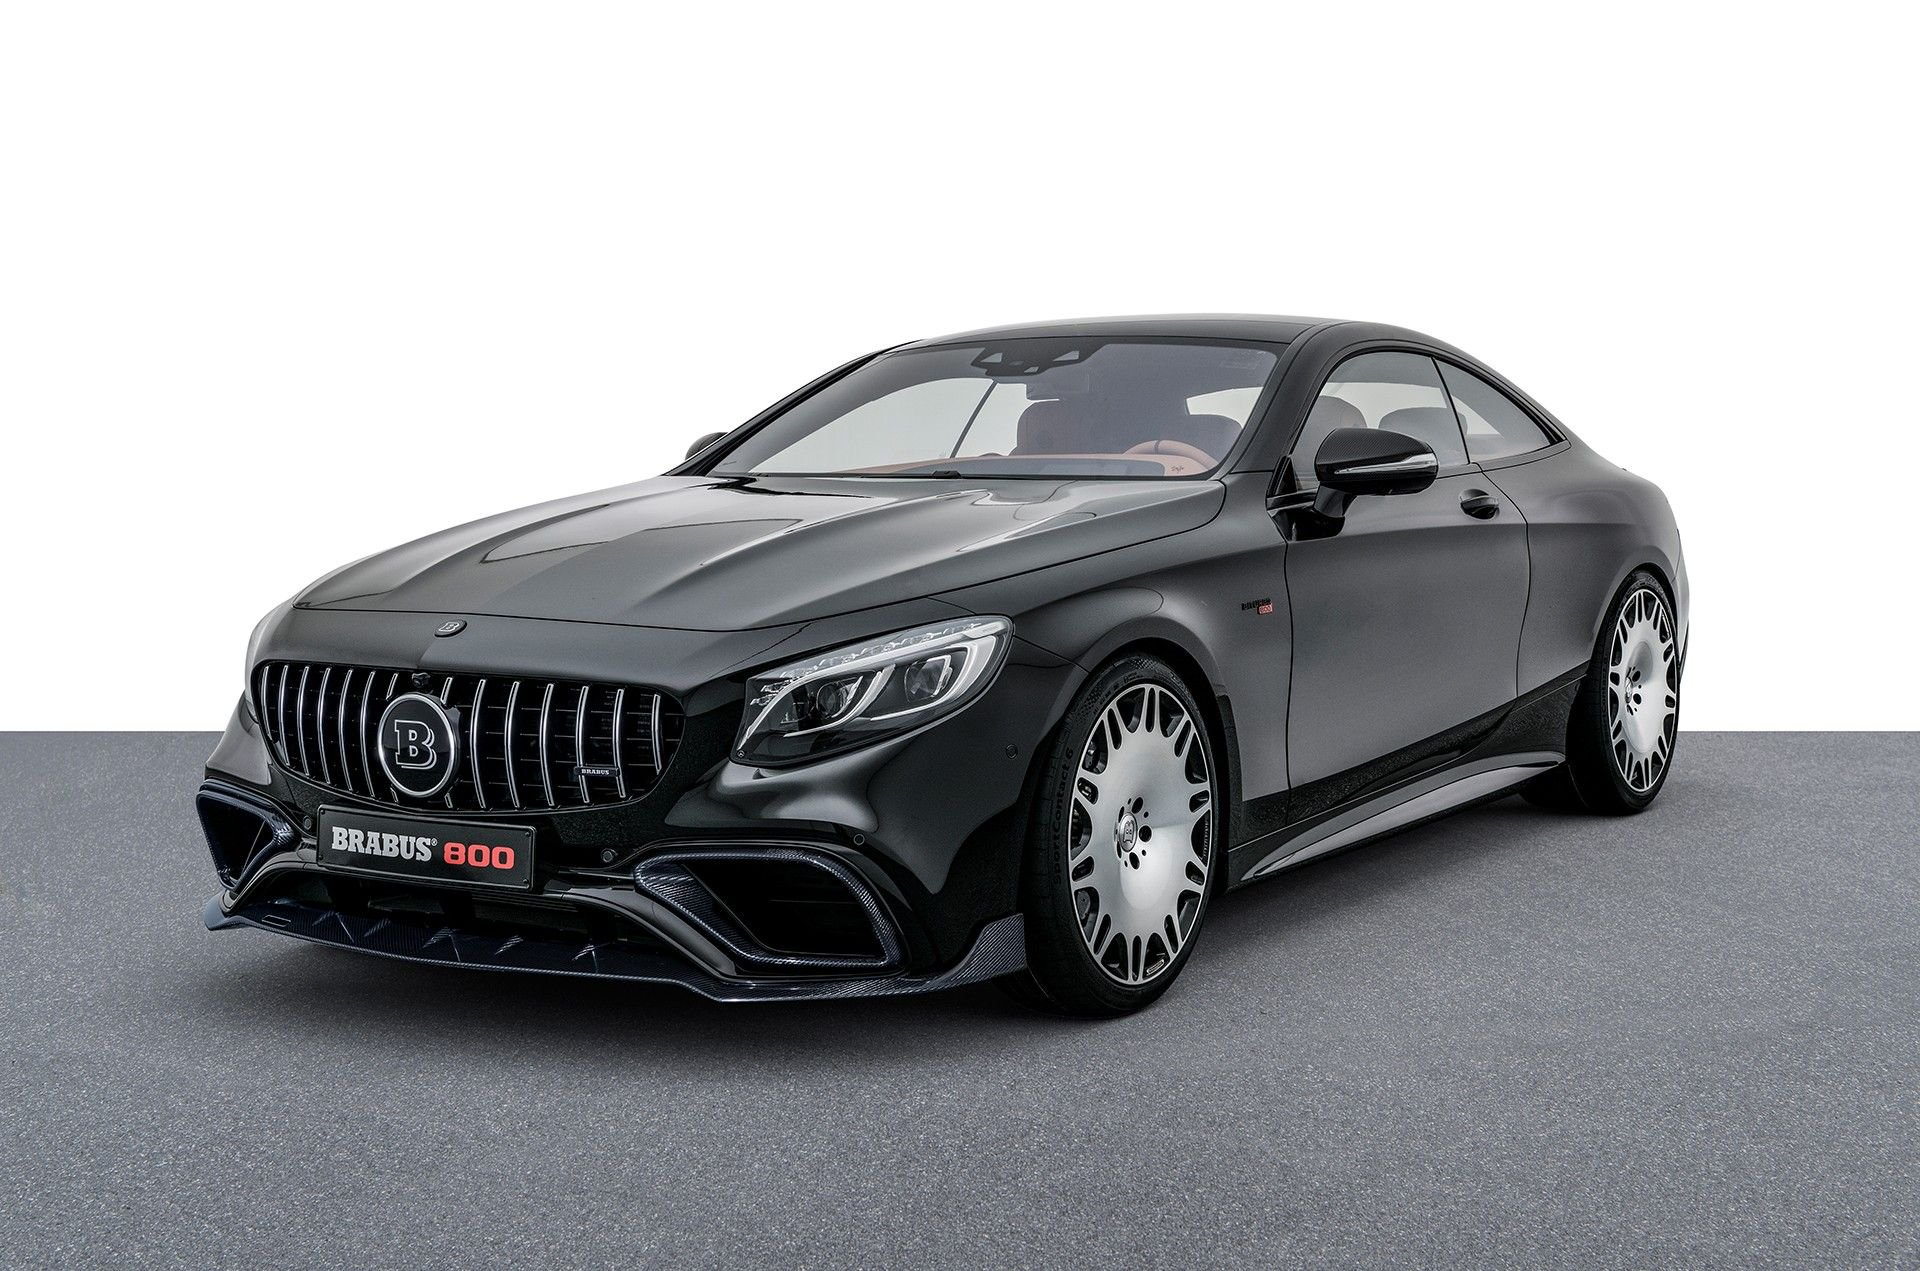 mercedes amg s63 coupe becomes sinister brabus 800 with 400 000 price autoevolution. Black Bedroom Furniture Sets. Home Design Ideas